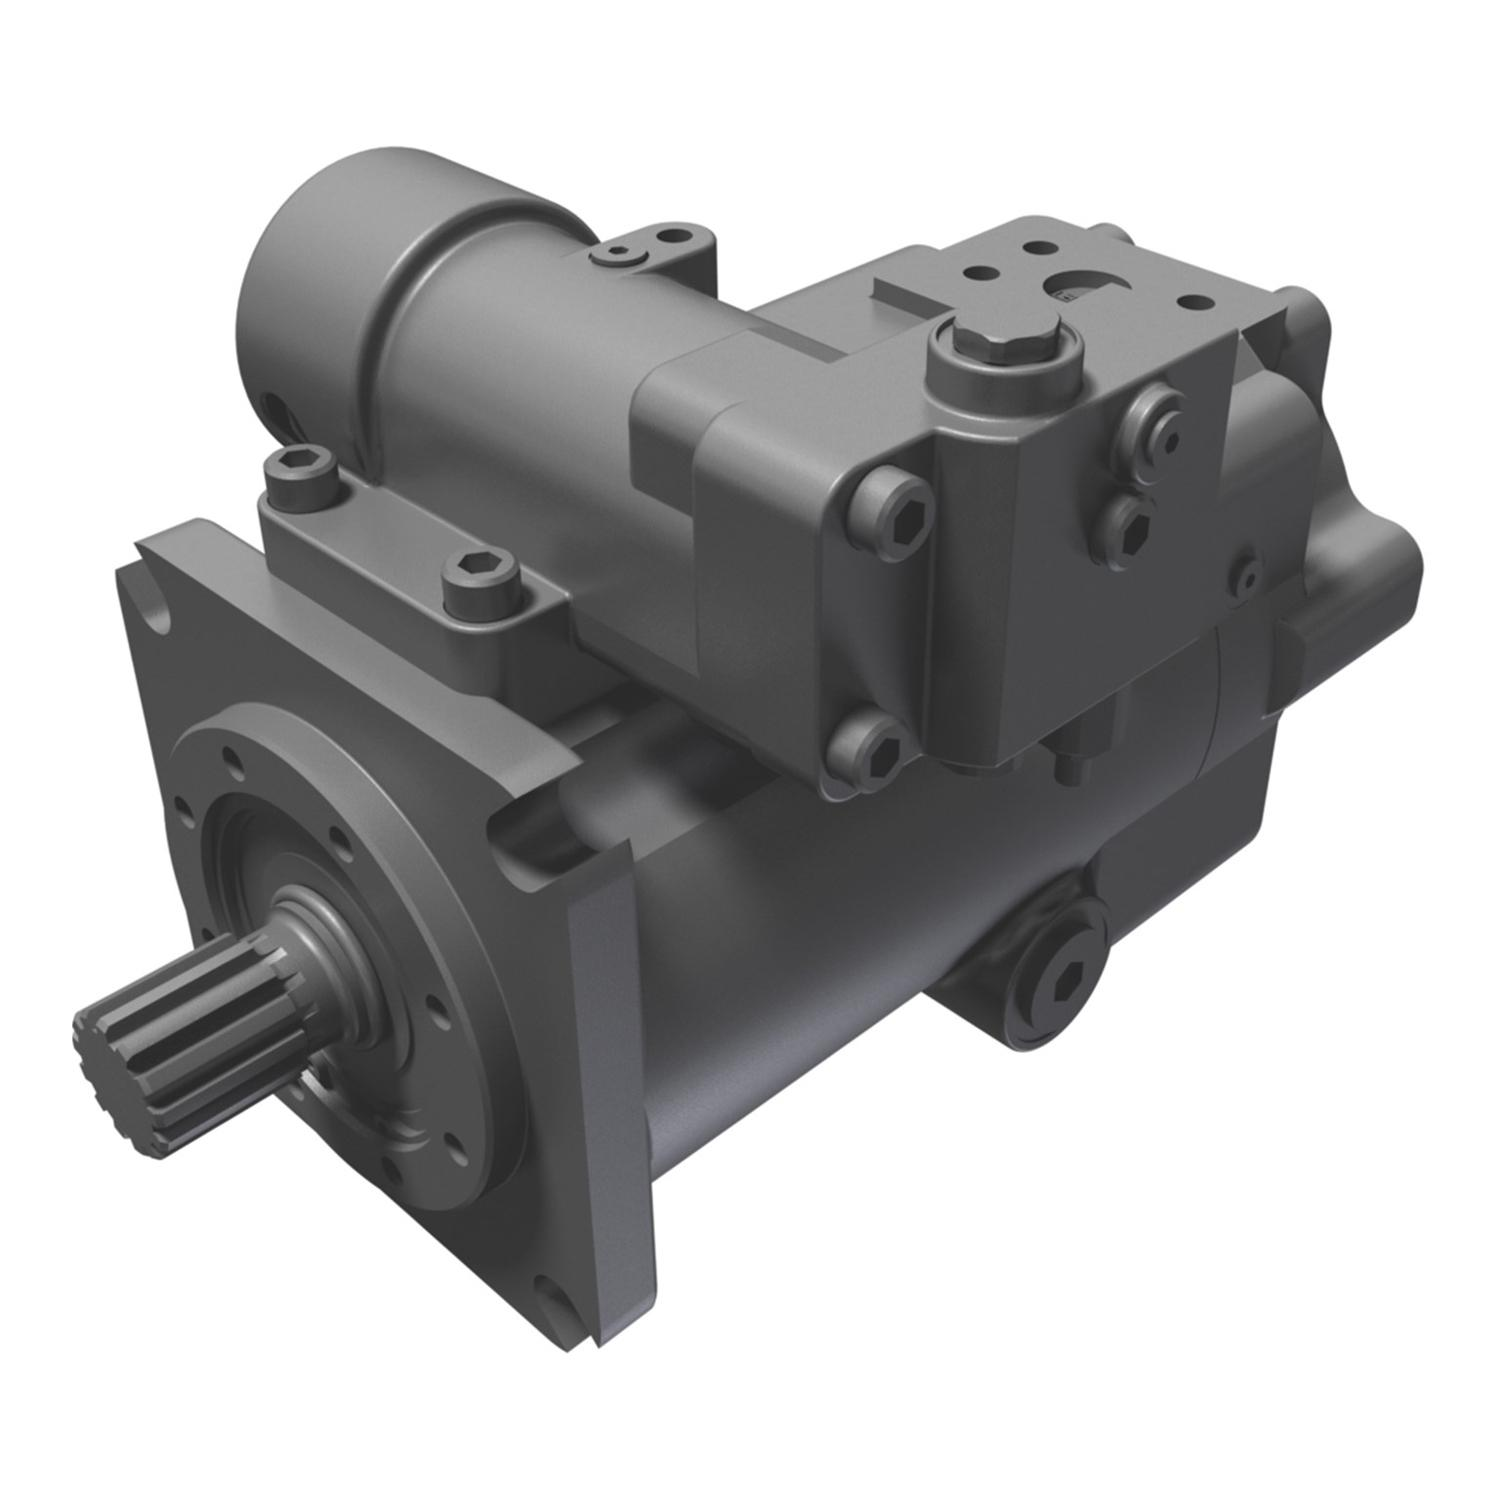 Oilgear's variable-displacement piston pumps are a cost-effective means of pumping environmentally-friendly fluid at high pressure